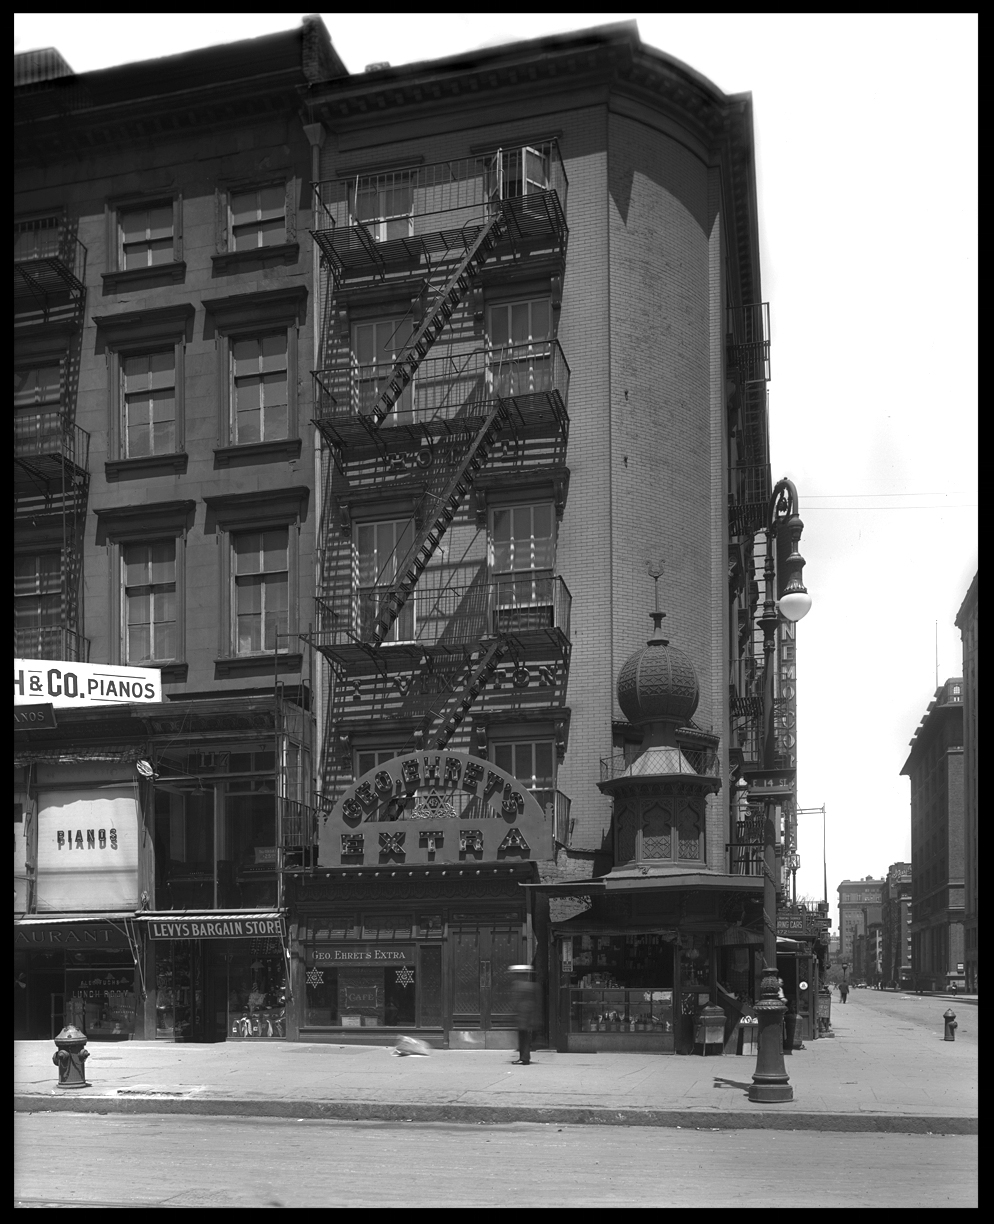 14th st & Irving Place c.1913 from original 8x10 negative